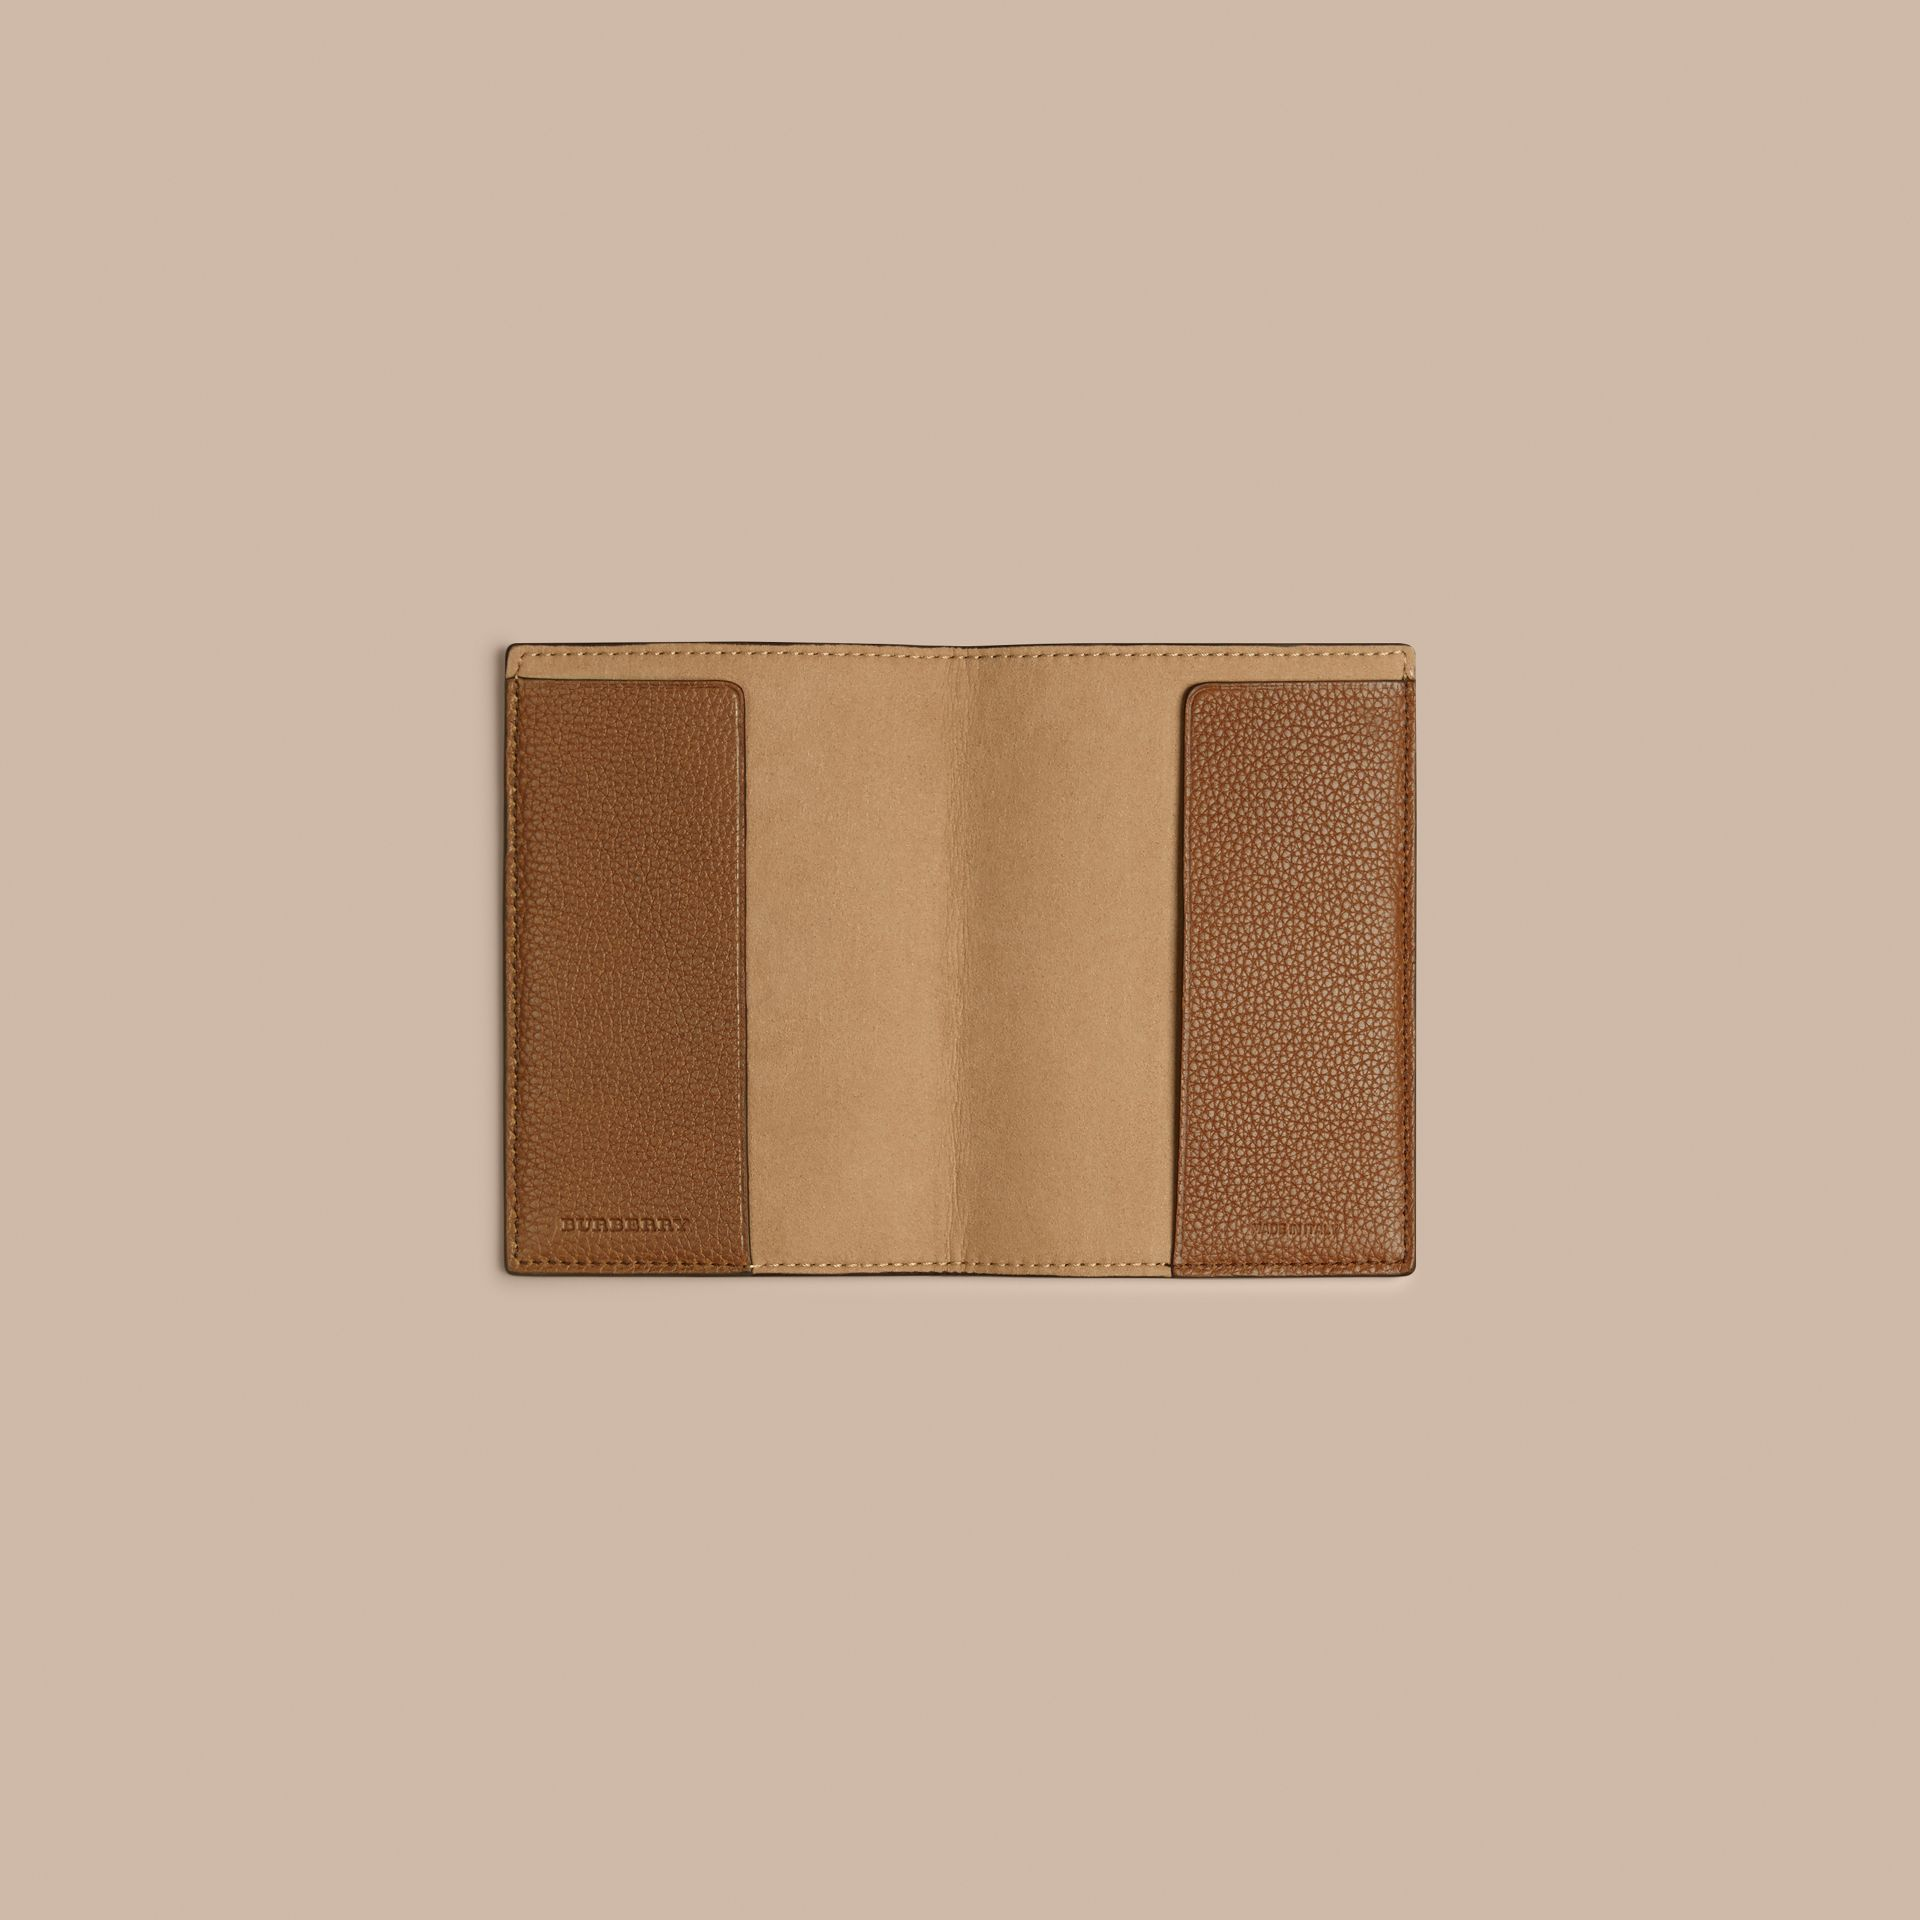 Grainy Leather Passport Cover in Tan - gallery image 3